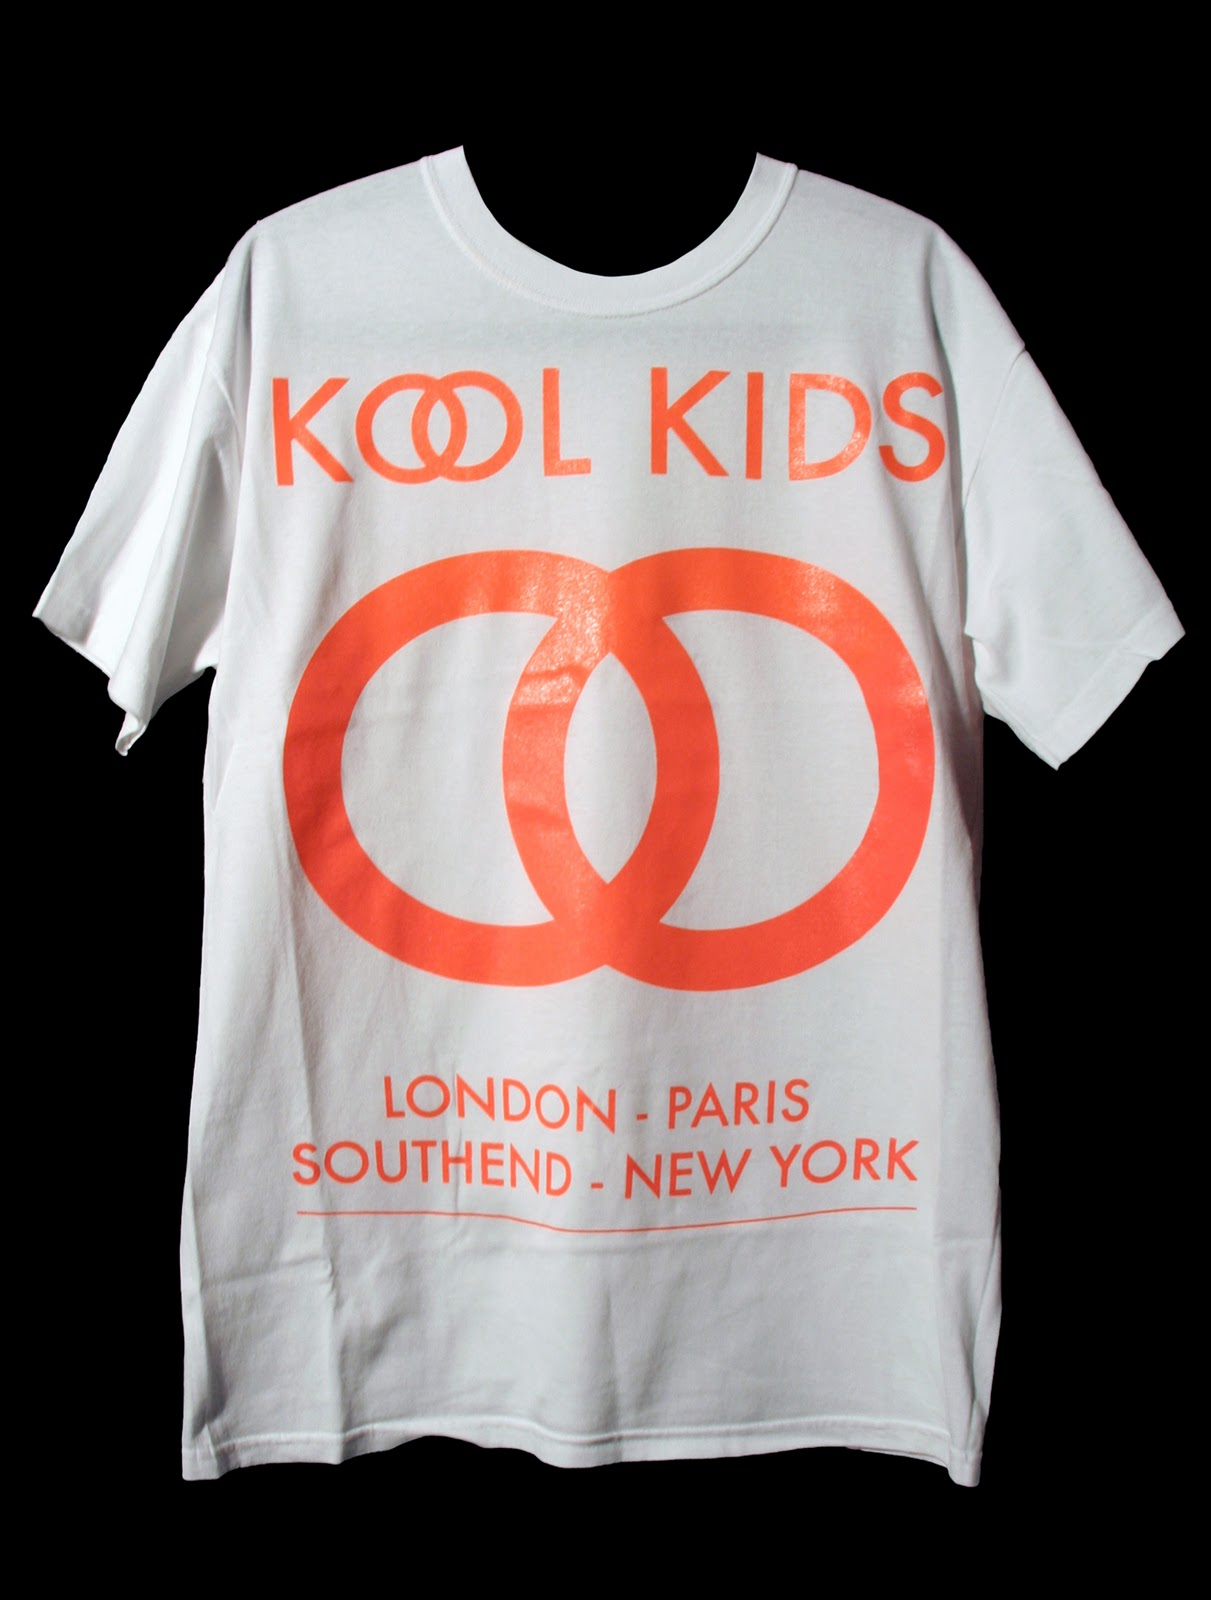 Posted by the kool kids klub labels t shirts the kool kids klub